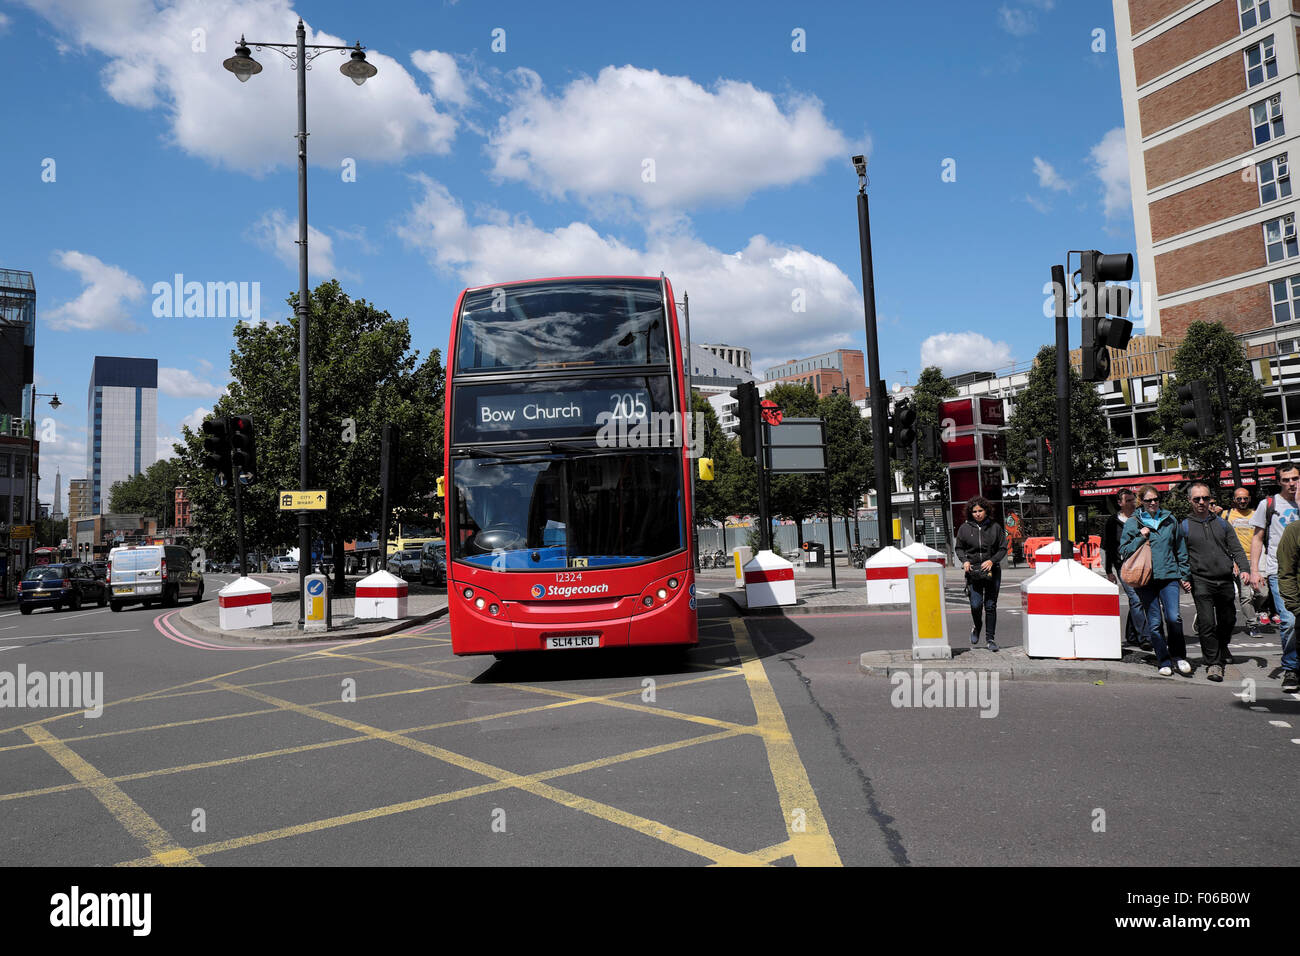 Red double decker 205 London bus on Old Street heading to Bow Church crossing a box junction in East London  UK - Stock Image